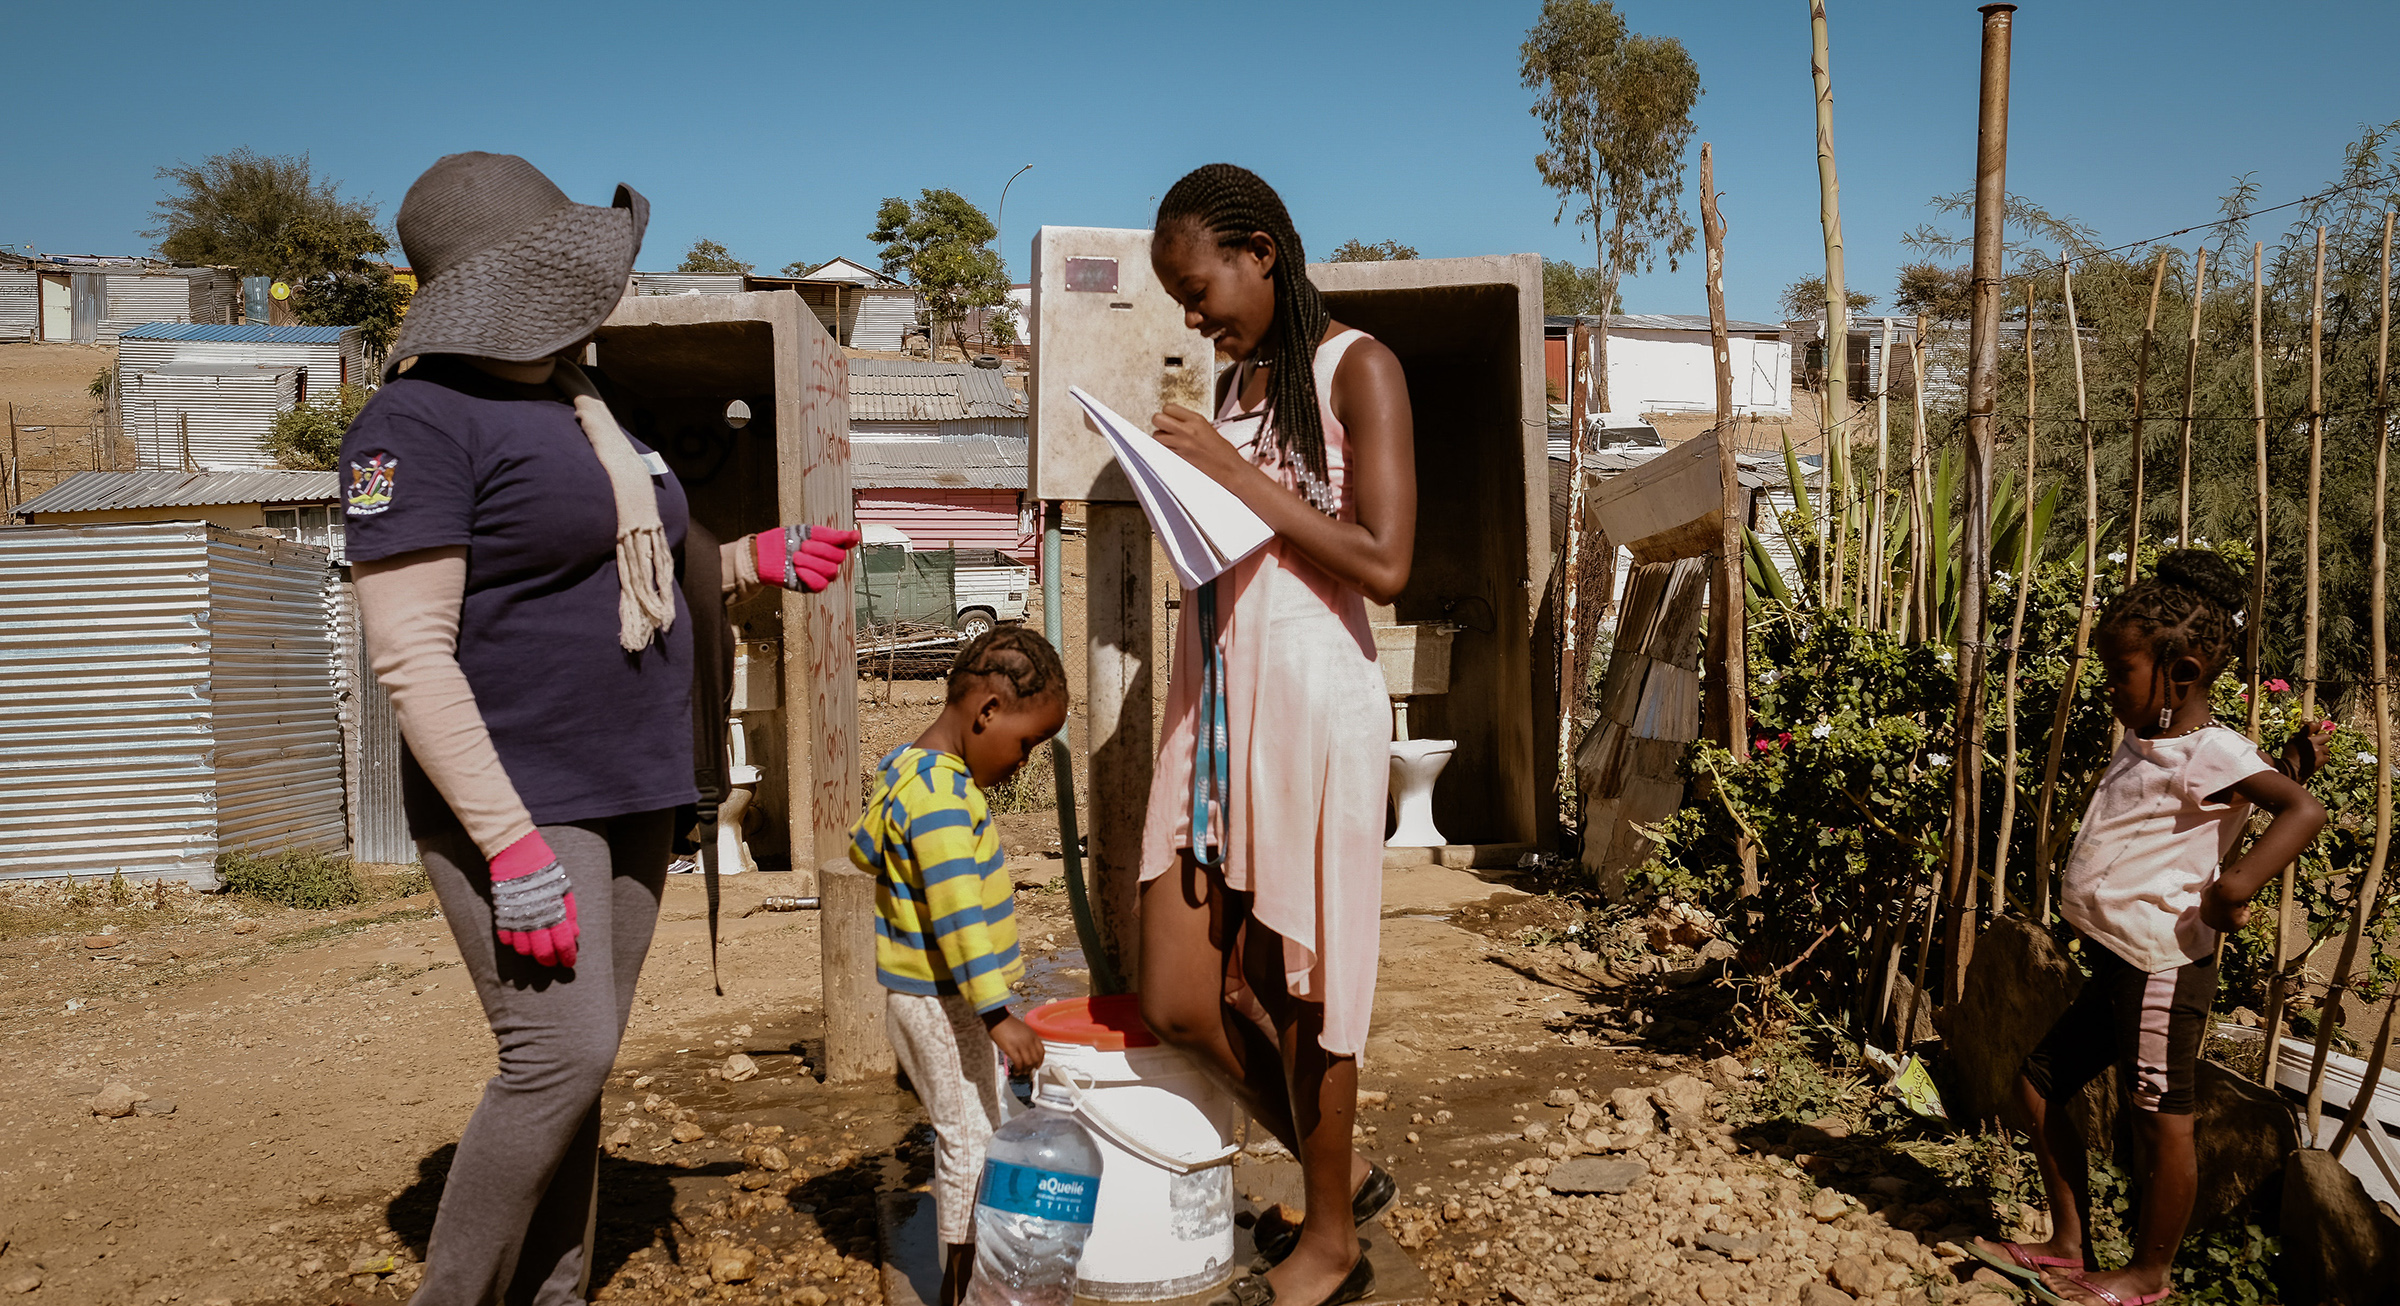 A DREAMS recruiter signs a woman up for the program while getting her daily water from a well in the Katatura unsettled camps in Namibia, in the summer of 2019.